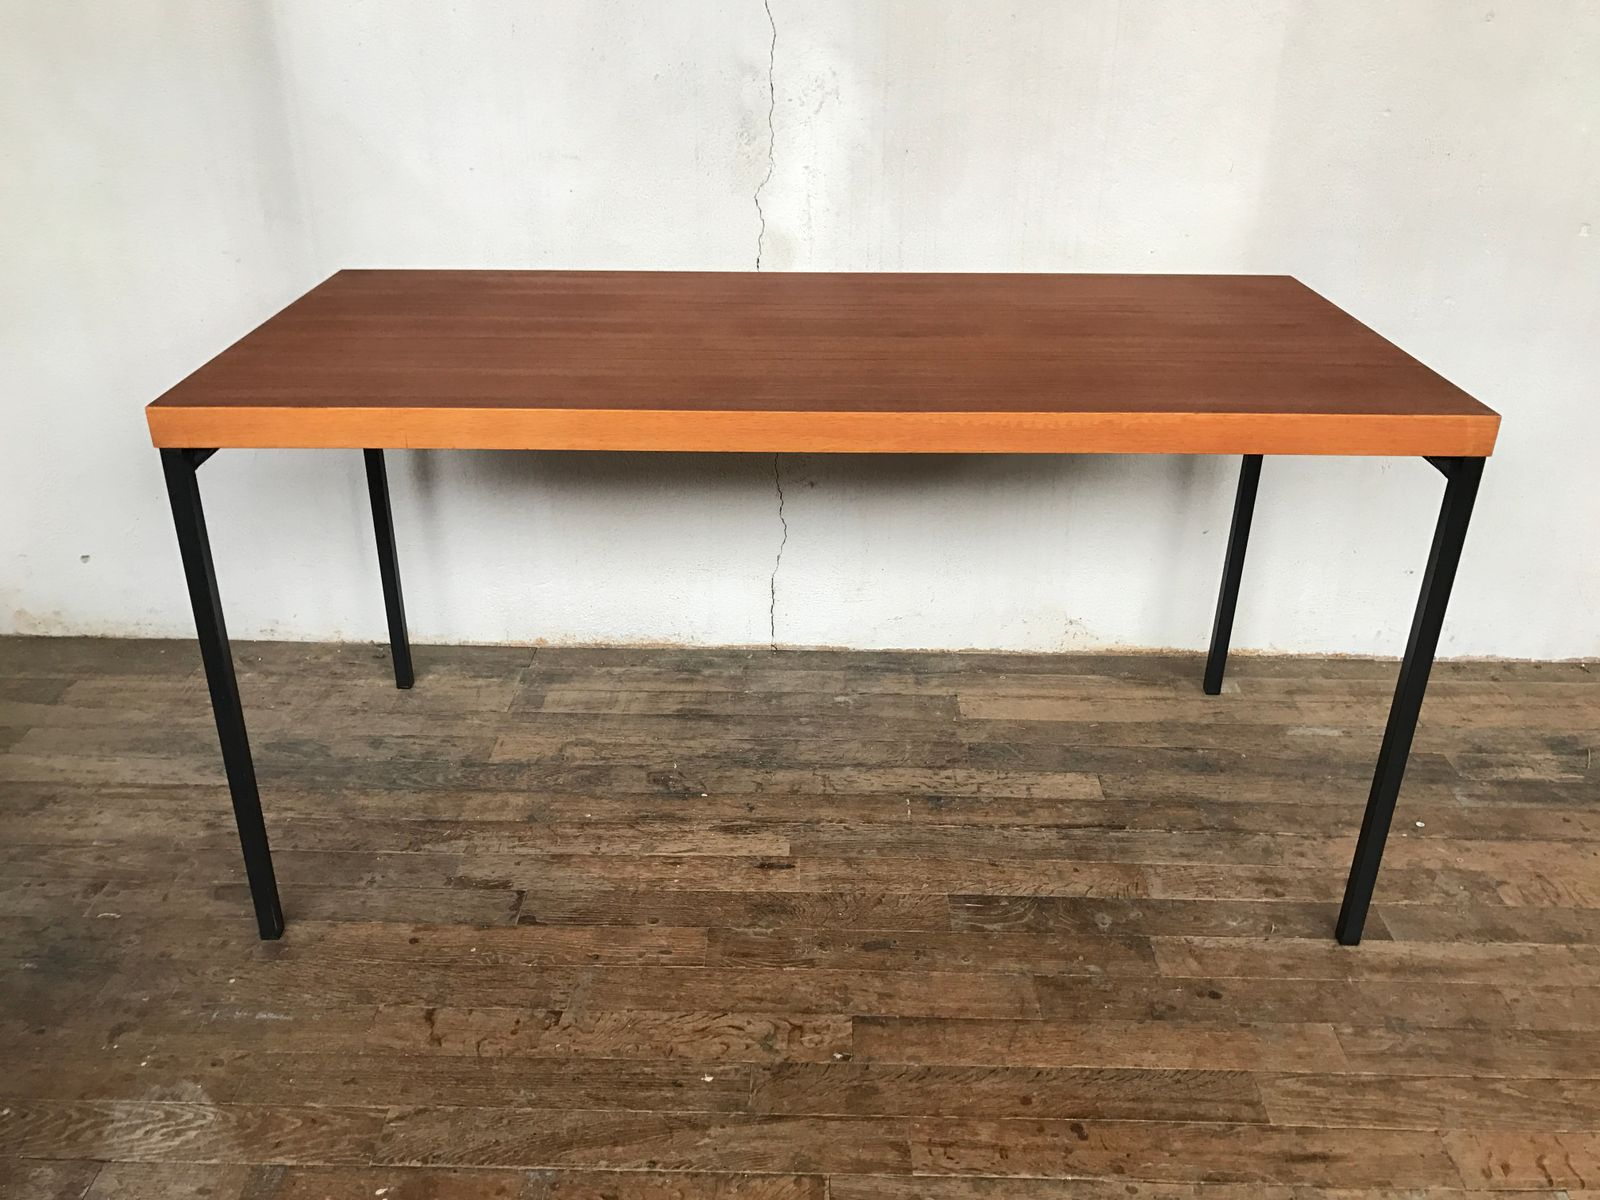 Teak Dining Table by Dieter Wäckerlin for Behr with 6 Chairs